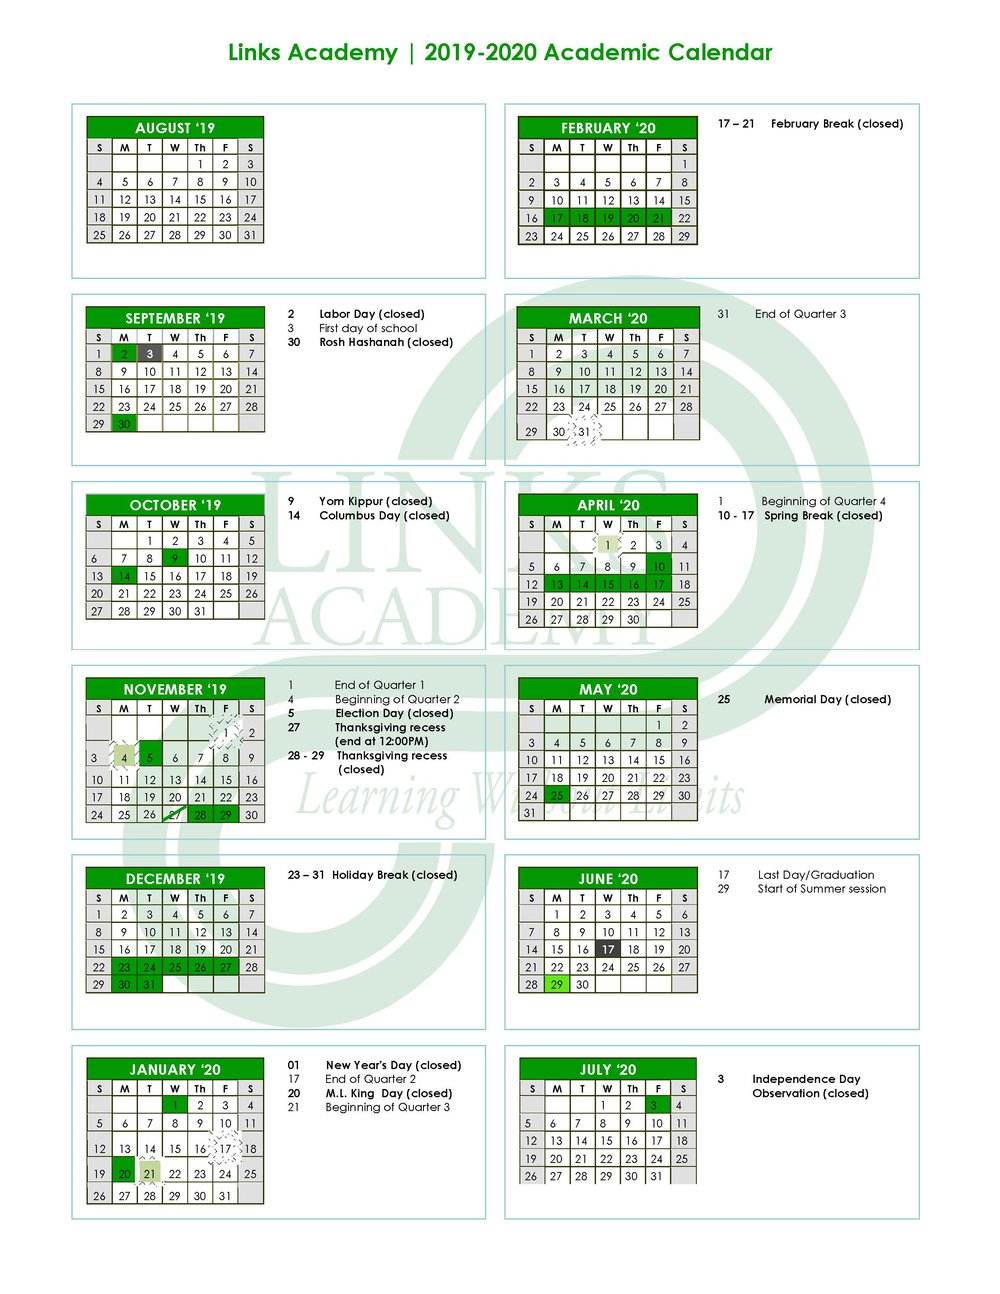 Academic Calendar — Links Academy Within Nassau Cc 19 20 Calendar